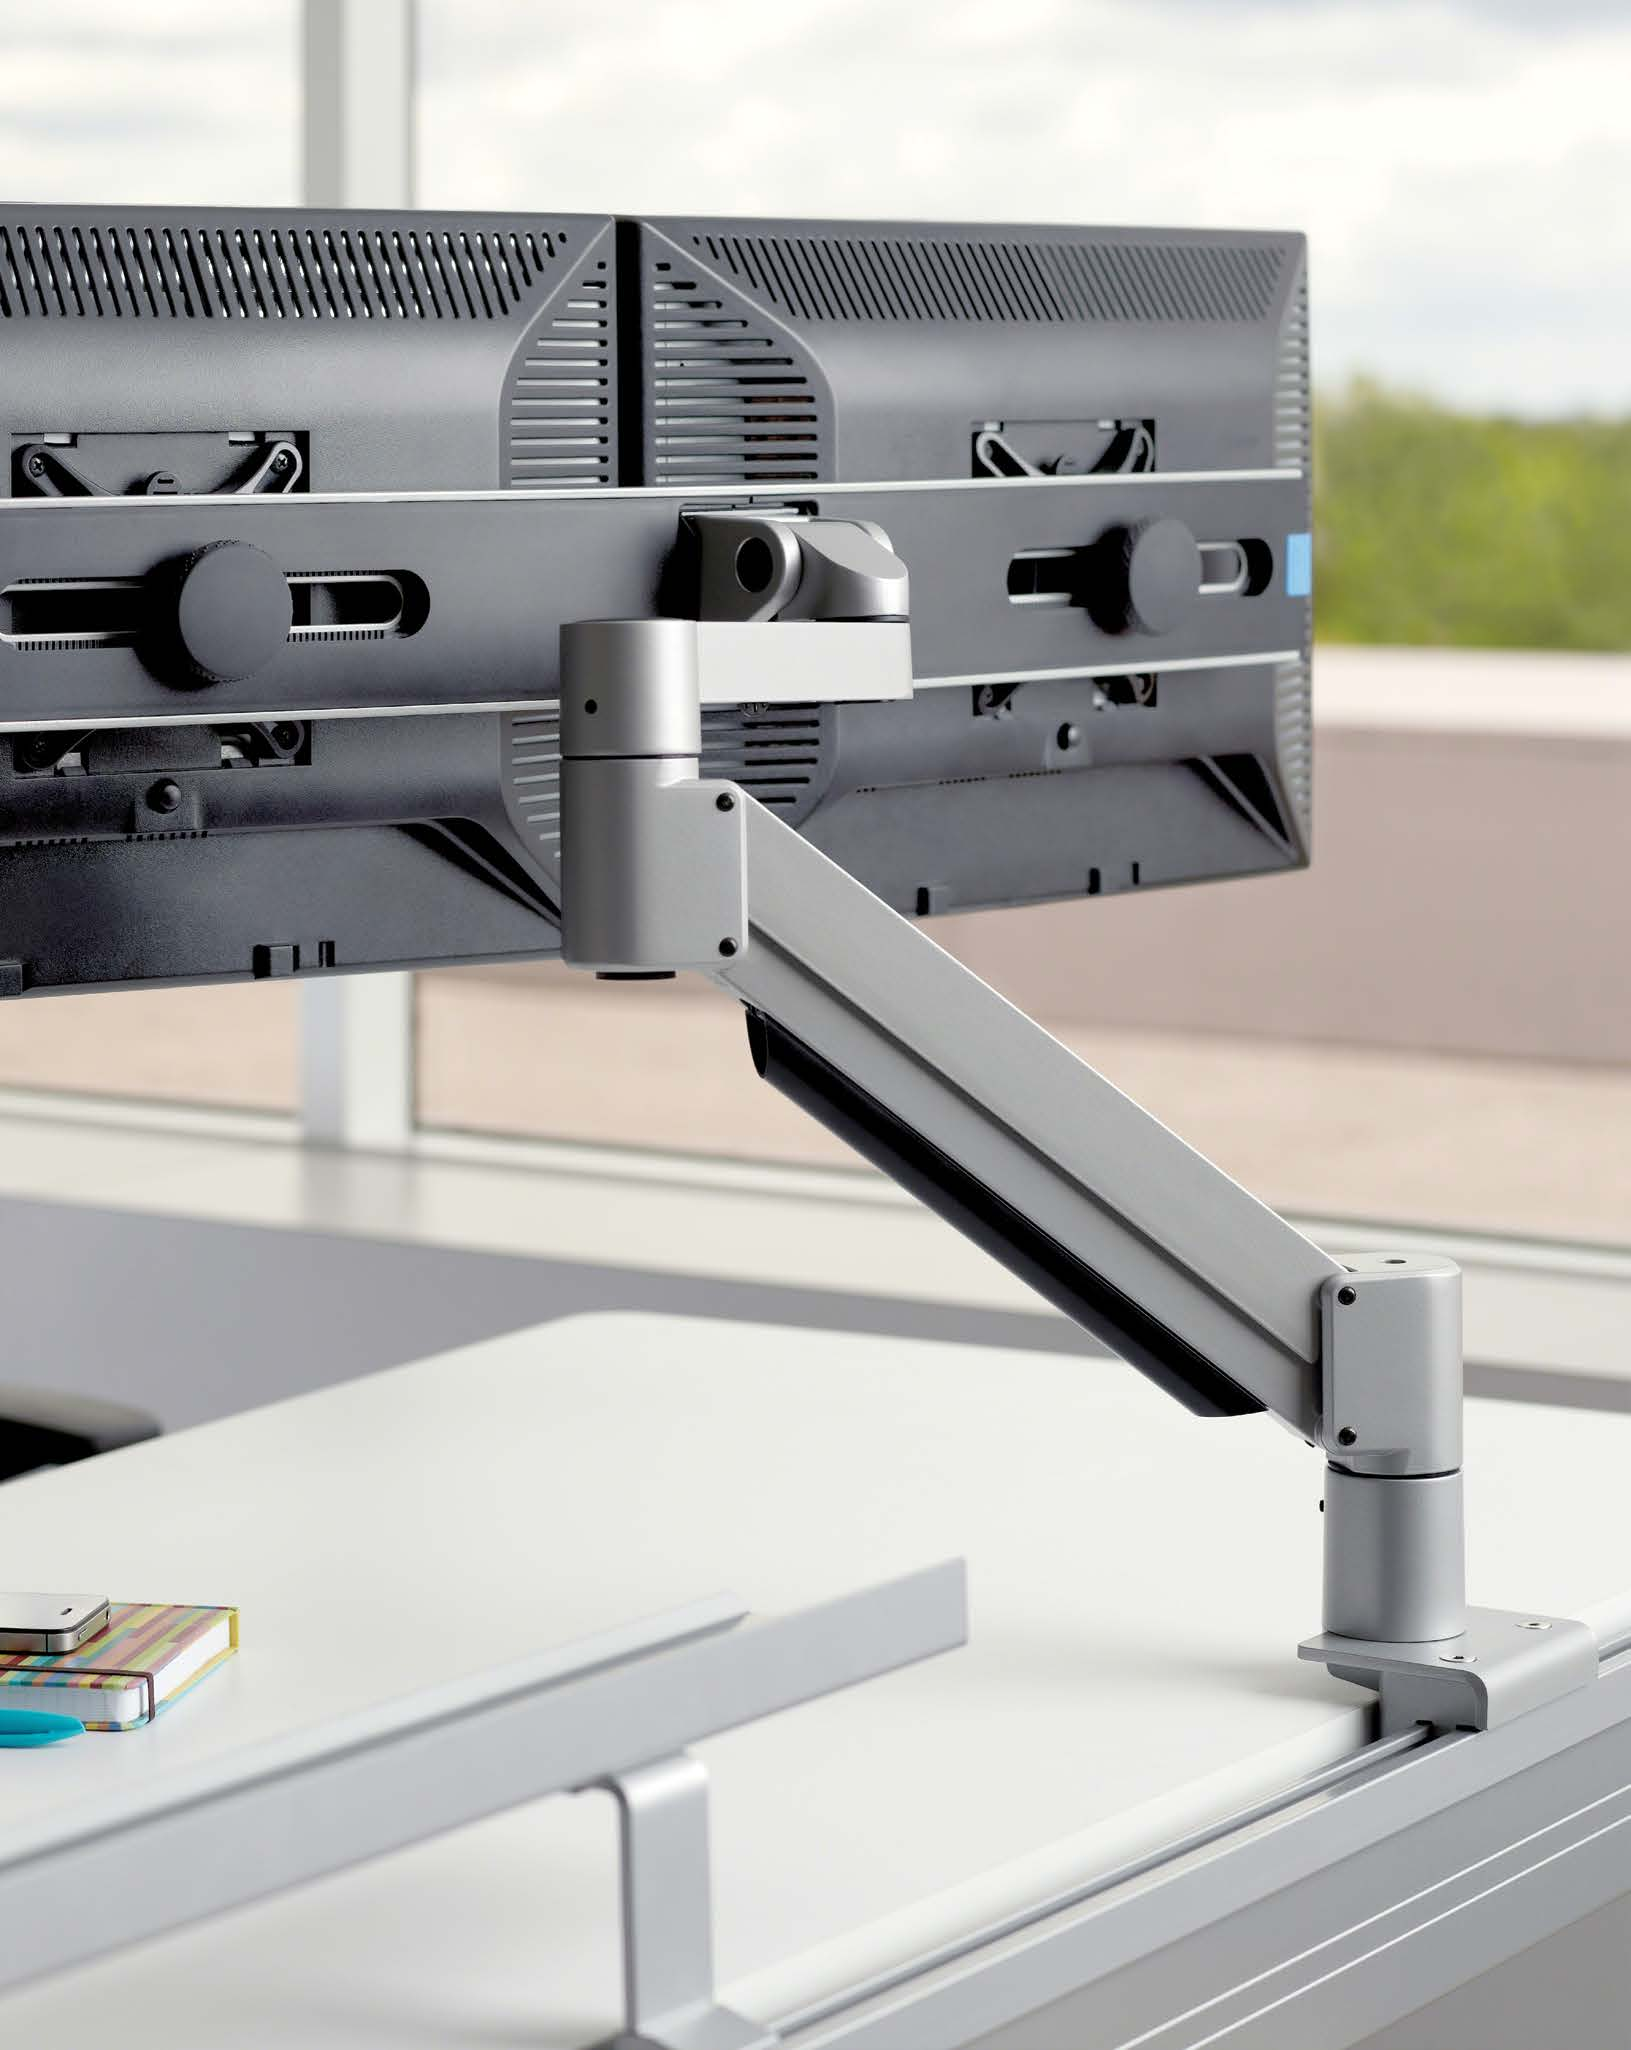 Personalized Monitor Display For single or dual monitors displayed side-by-side or stacked the CF Series Flat Panel Monitor Arm secures screens in the optimal position to meet a wide range of